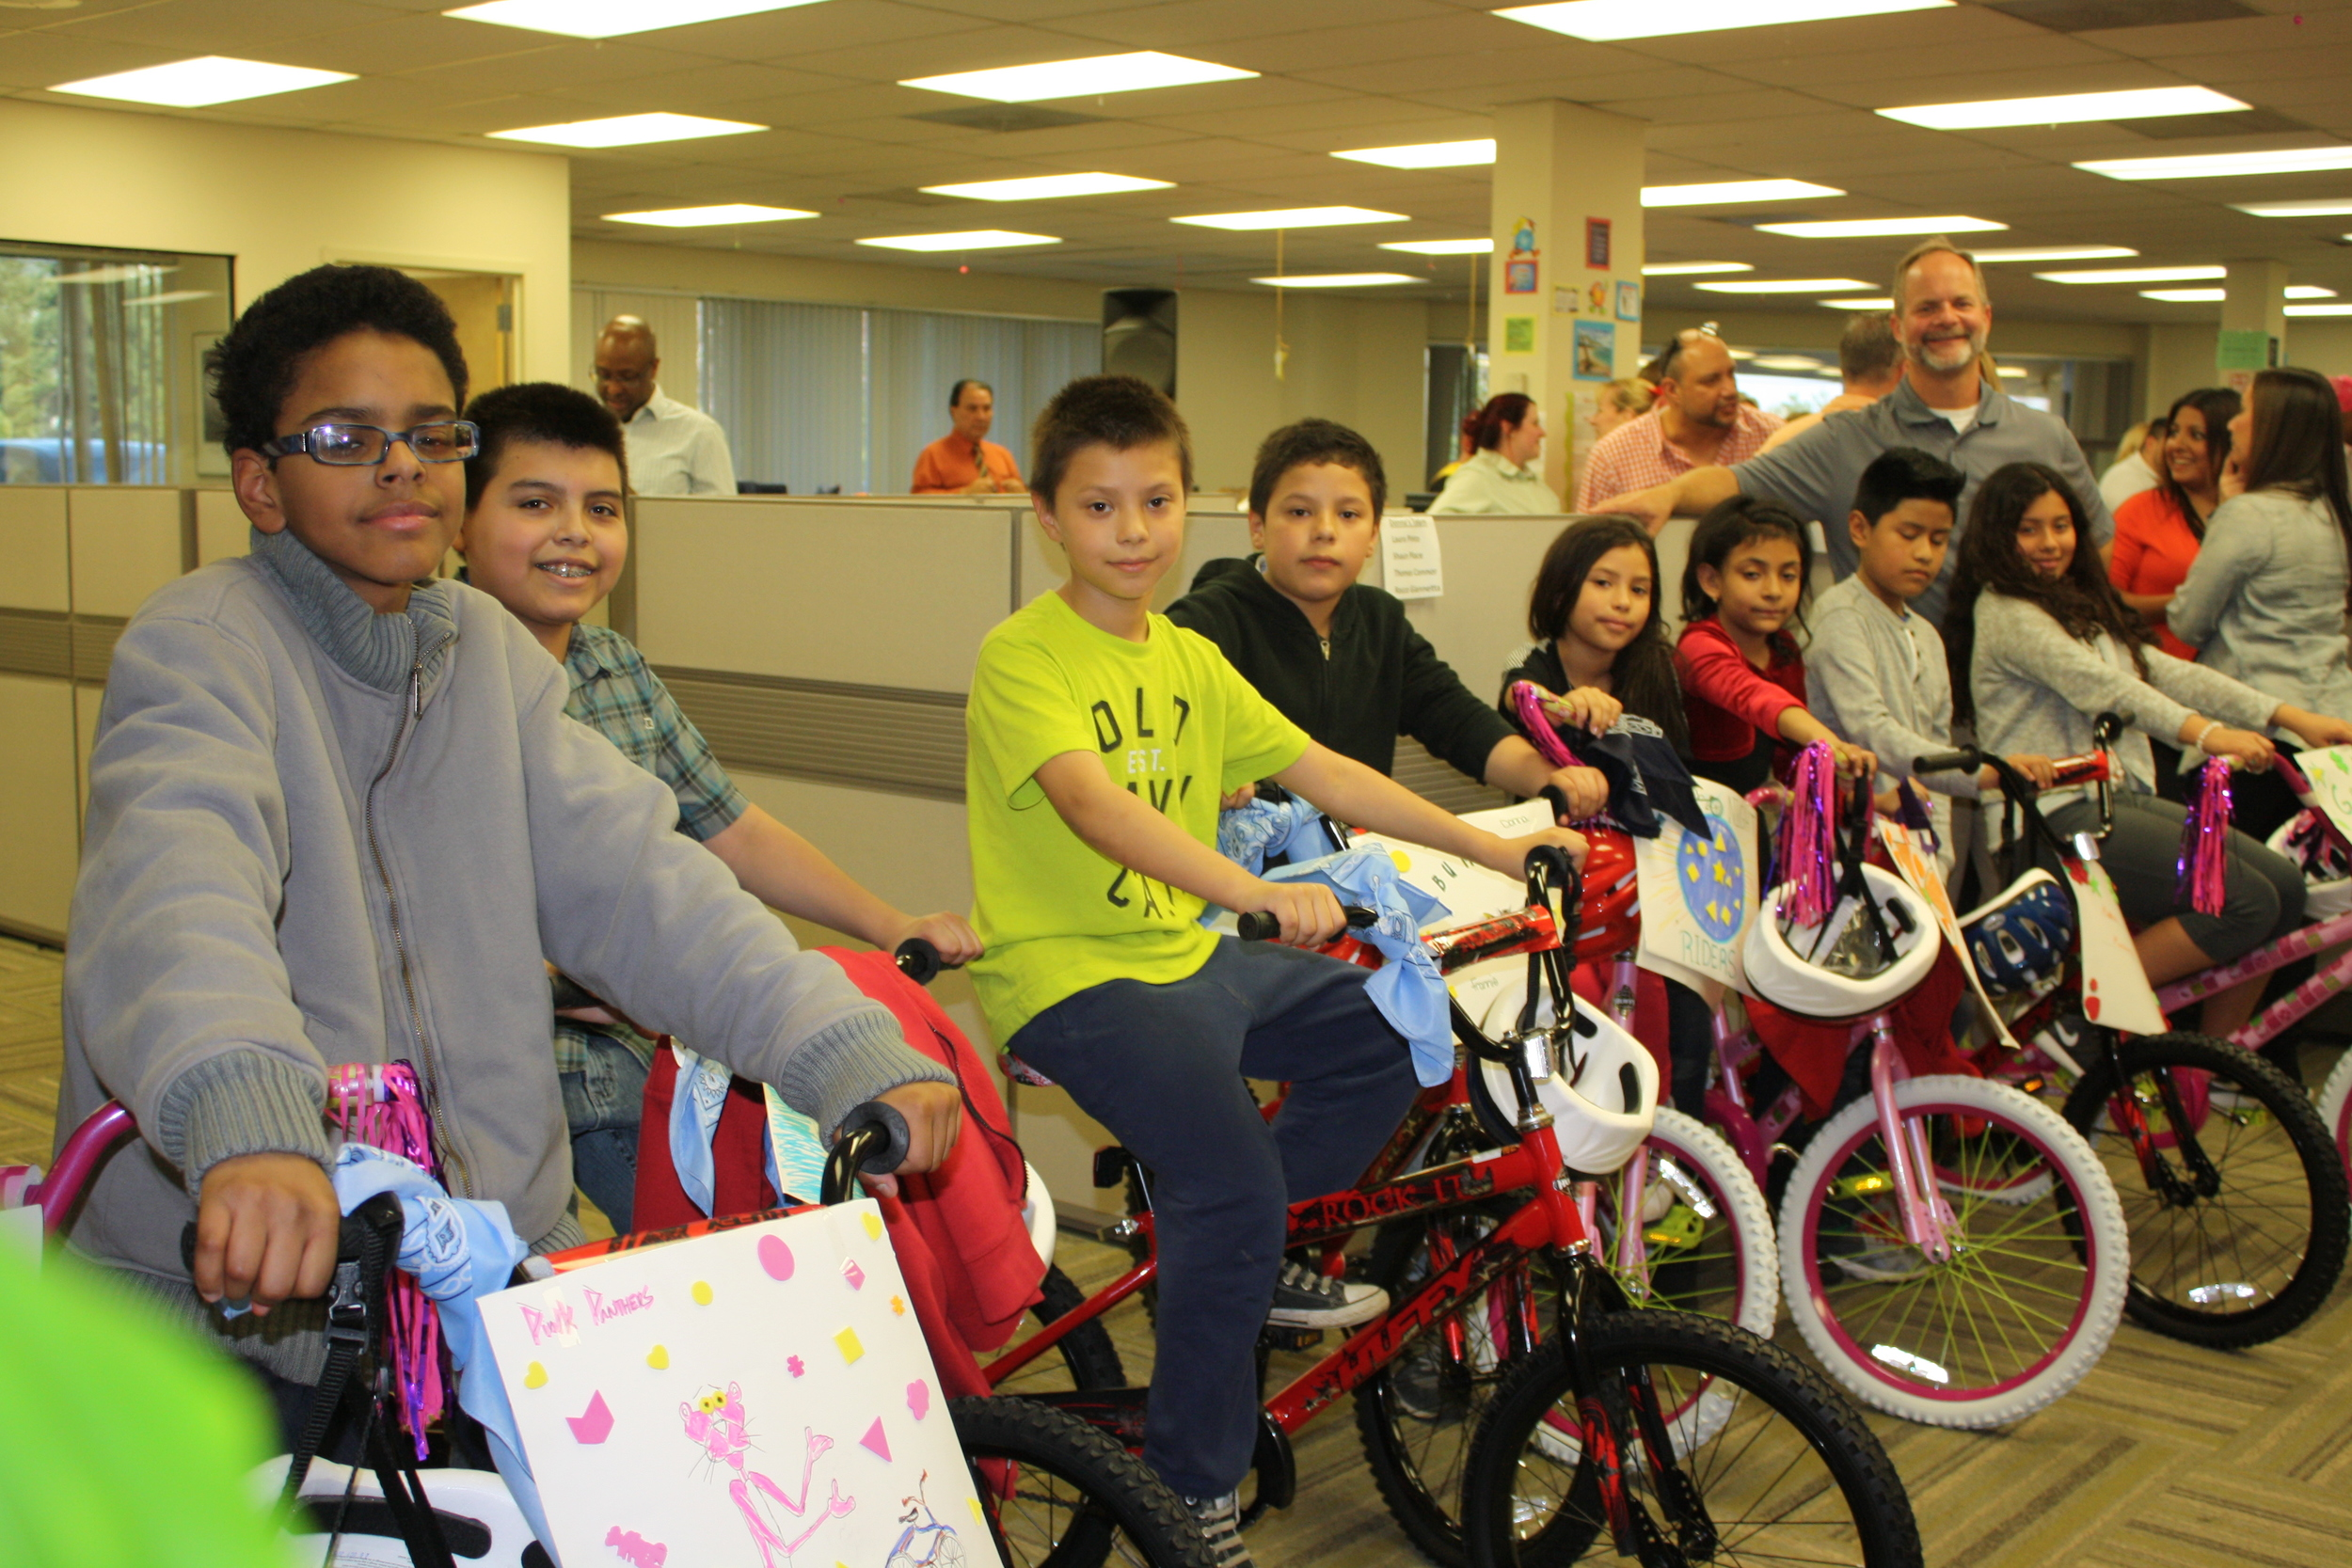 Earlier this month, Minnesota-based revenue-cycle management firm Optum360 sponsored an event where employees built bicycles and donated them to 10 Melville children.